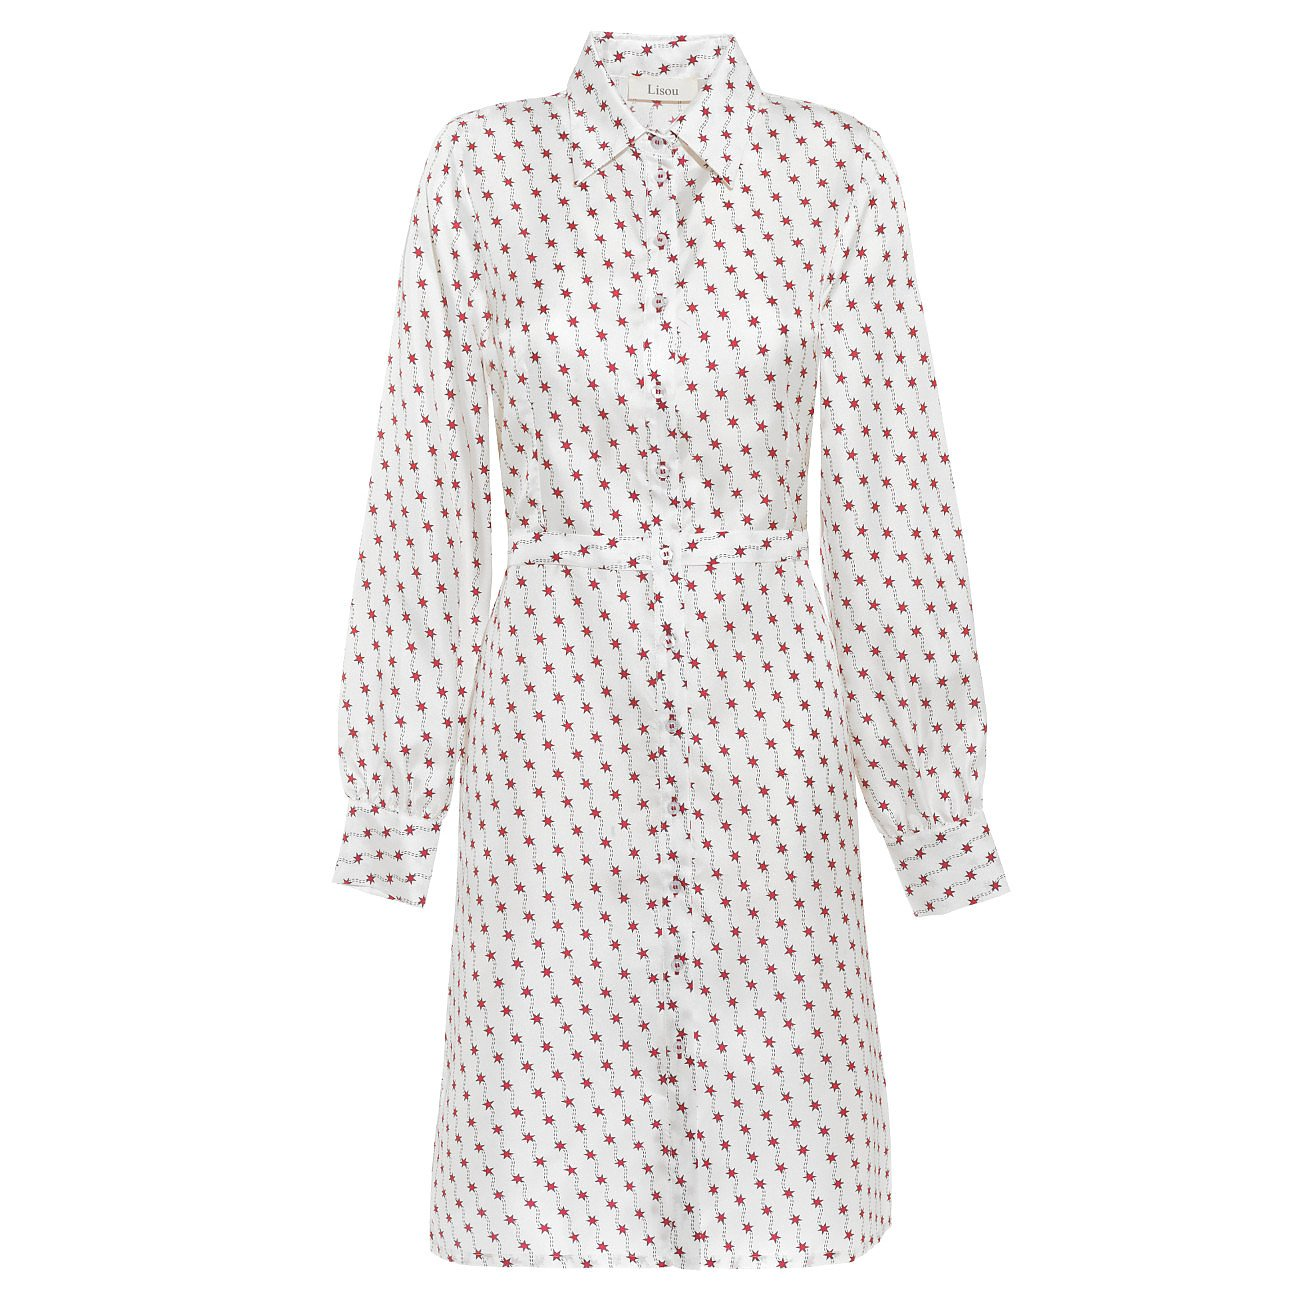 Lisou Isabelle White Red Shooting Star Dress